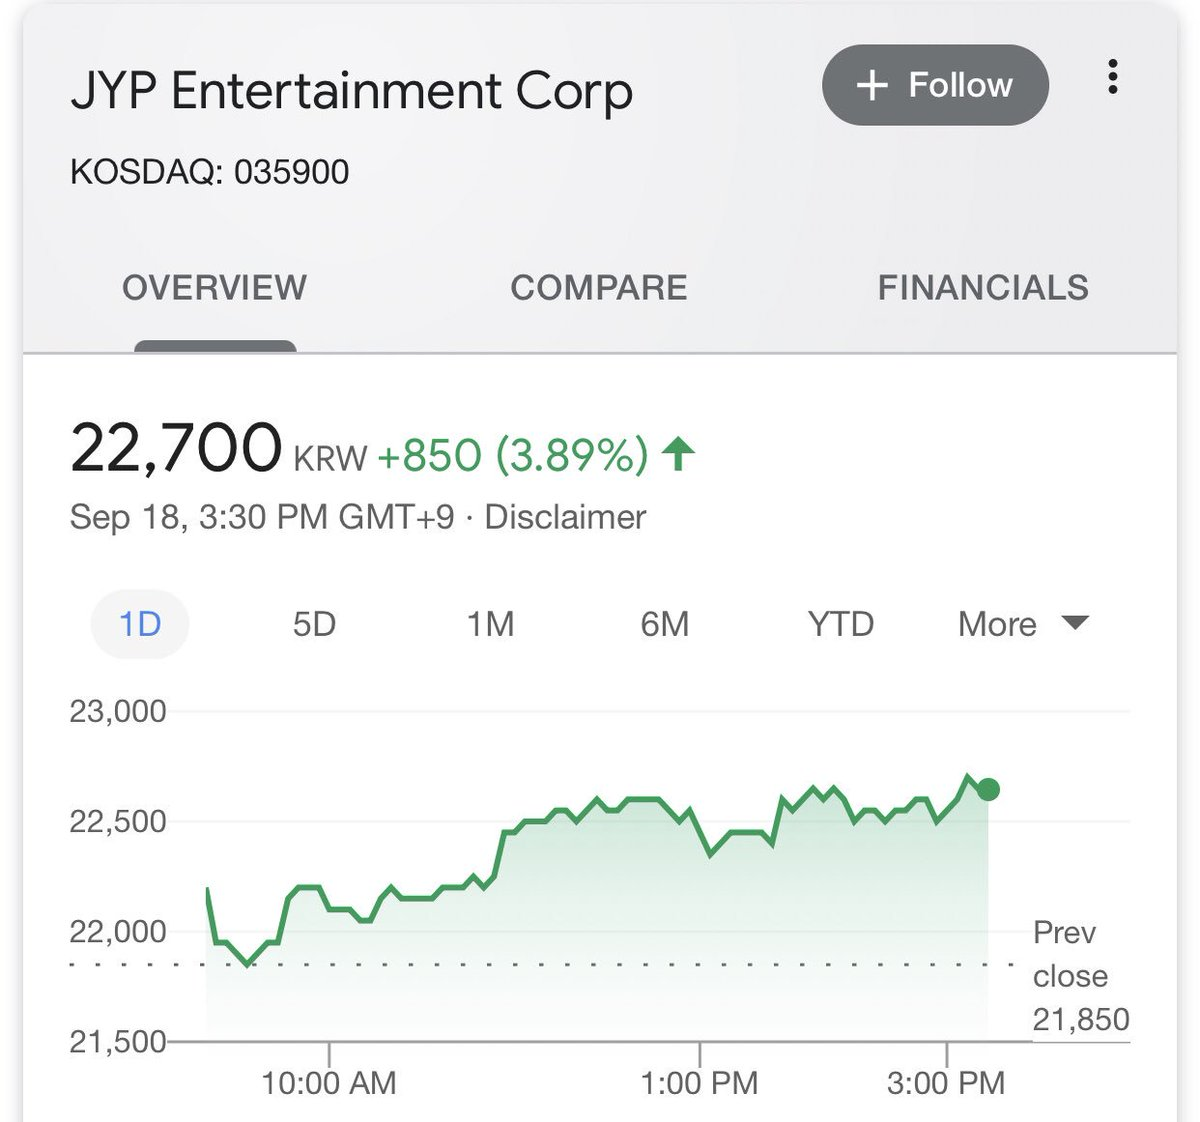 JYP entertainment stock and YG entertainment stock are now the closest to each other they've ever been